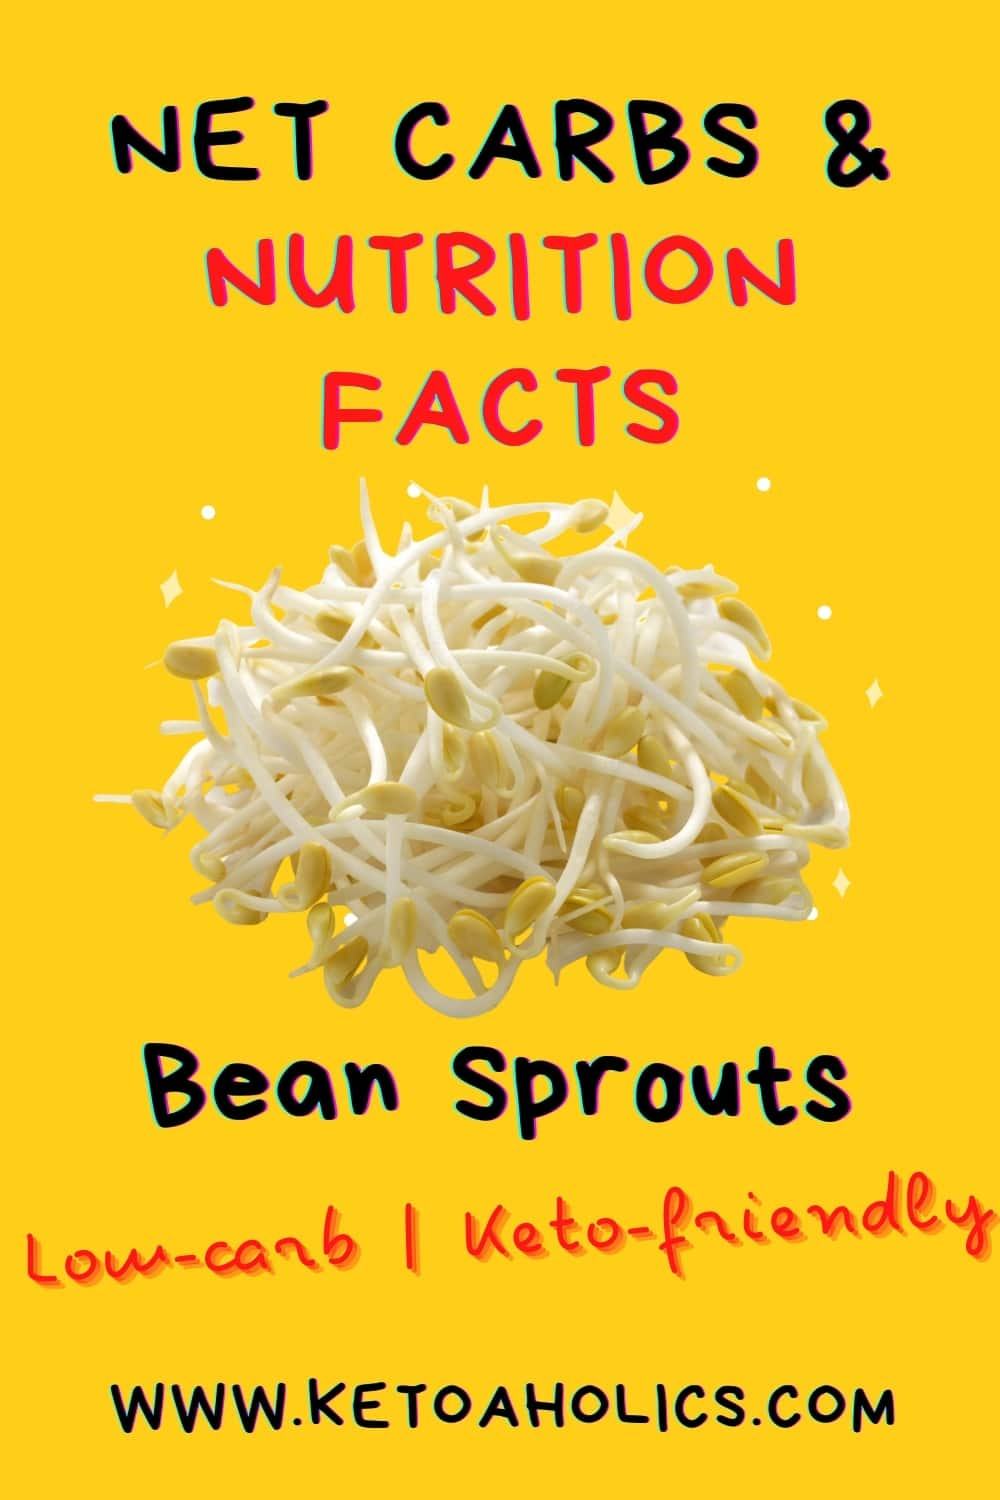 image of are bean sprouts keto-friendly